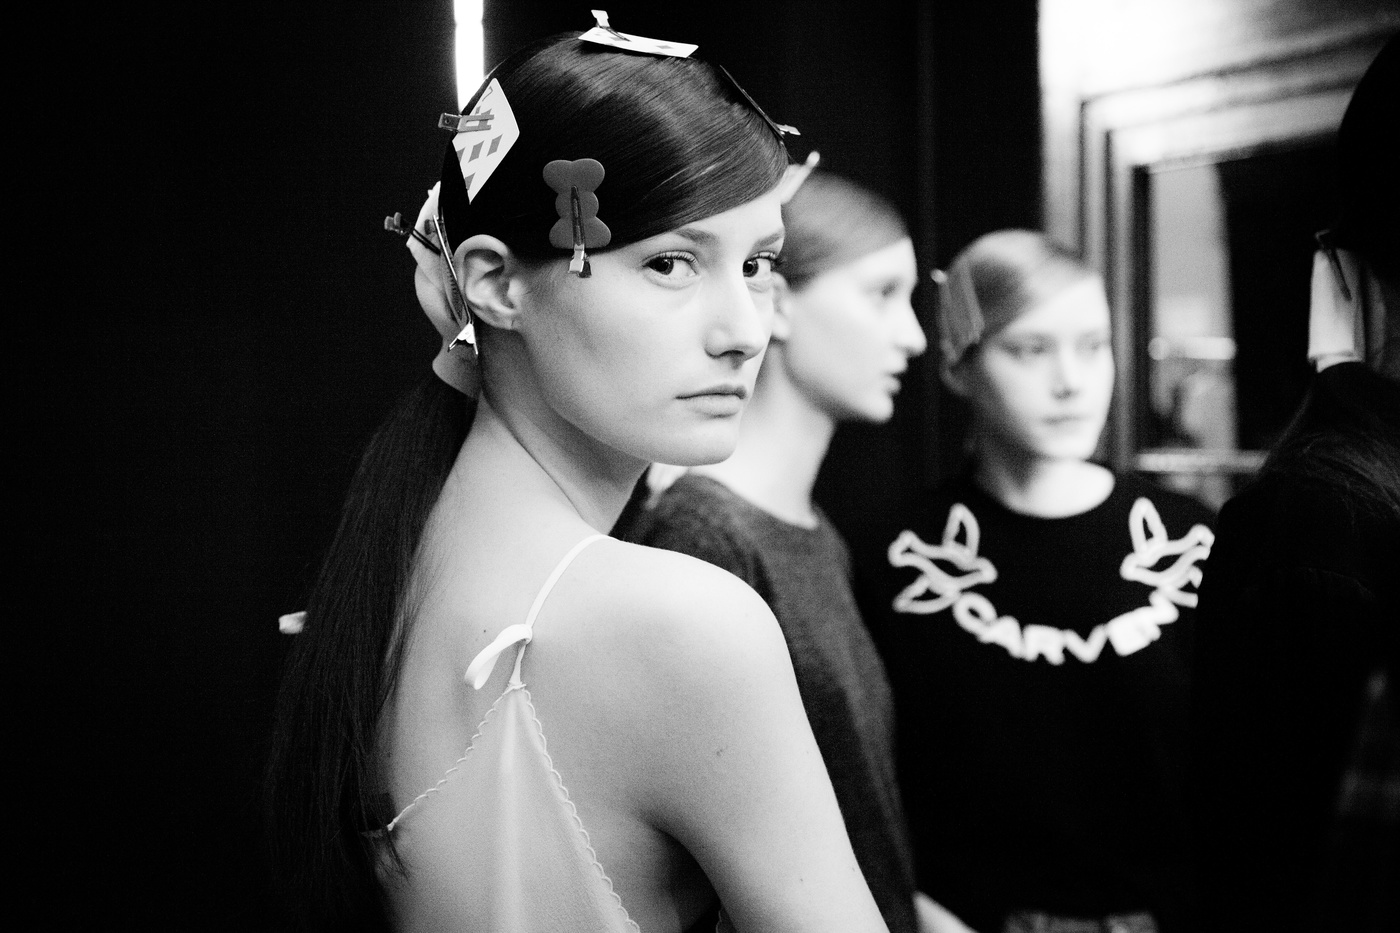 Models getting ready for the runway show backstage at Sharon Wauchob during Paris Fashion Week SS15 photographed by Ger Ger